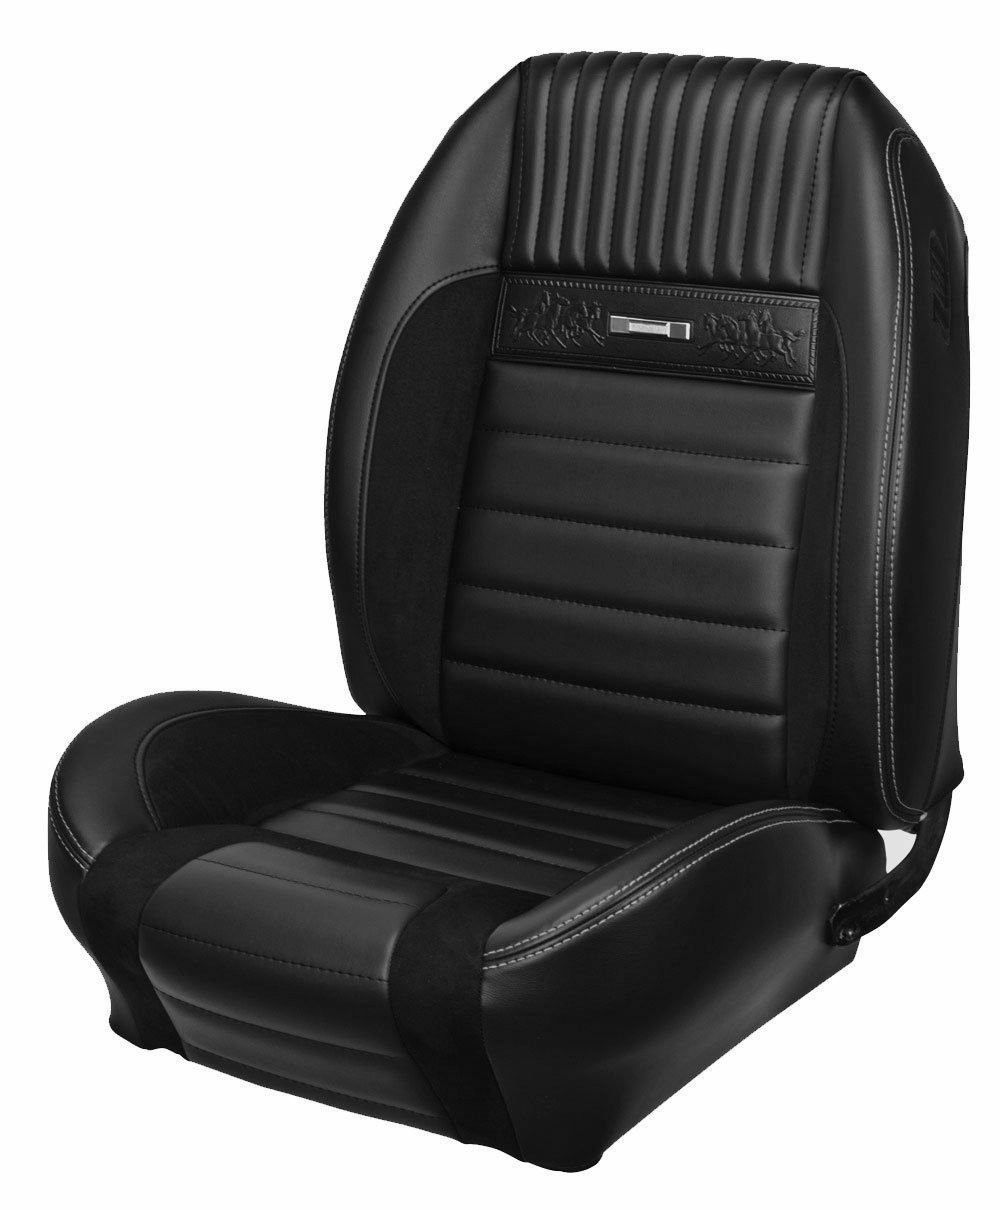 Deluxe pony upholstery for 1964 1966 mustang coupe convertible w bucket seats front only